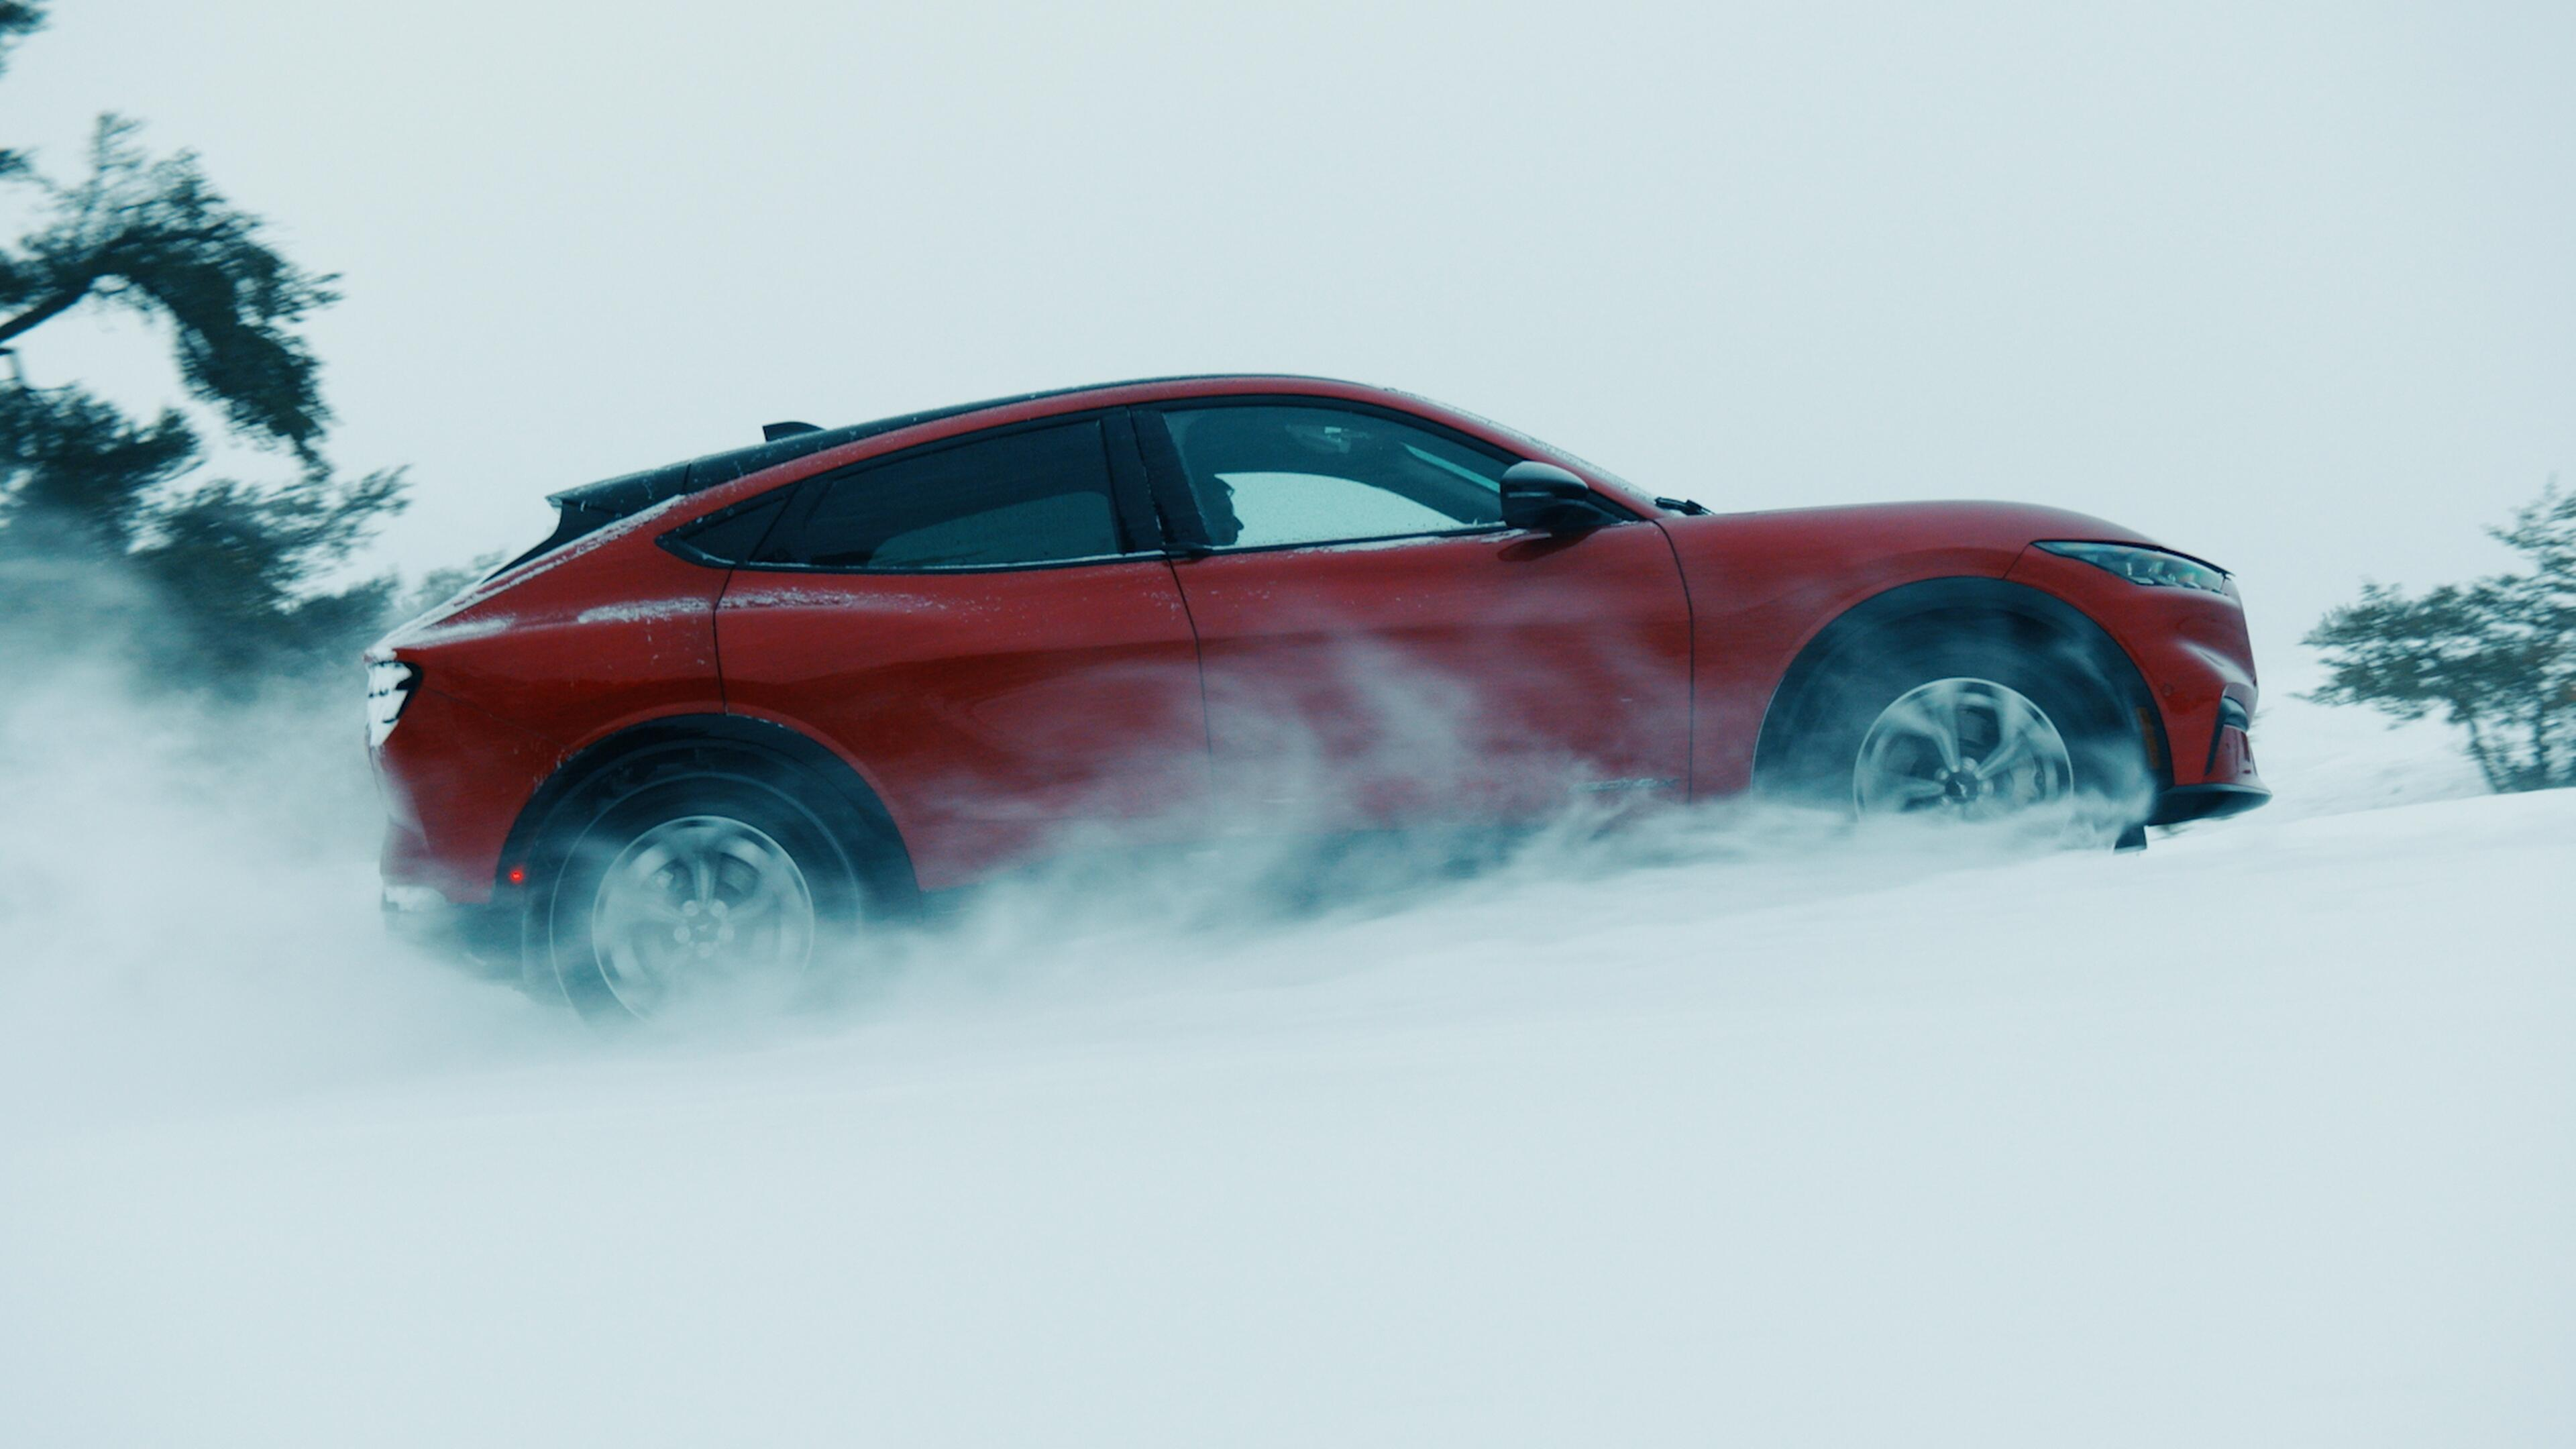 2021 Ford Mustang Mach-E winter testing